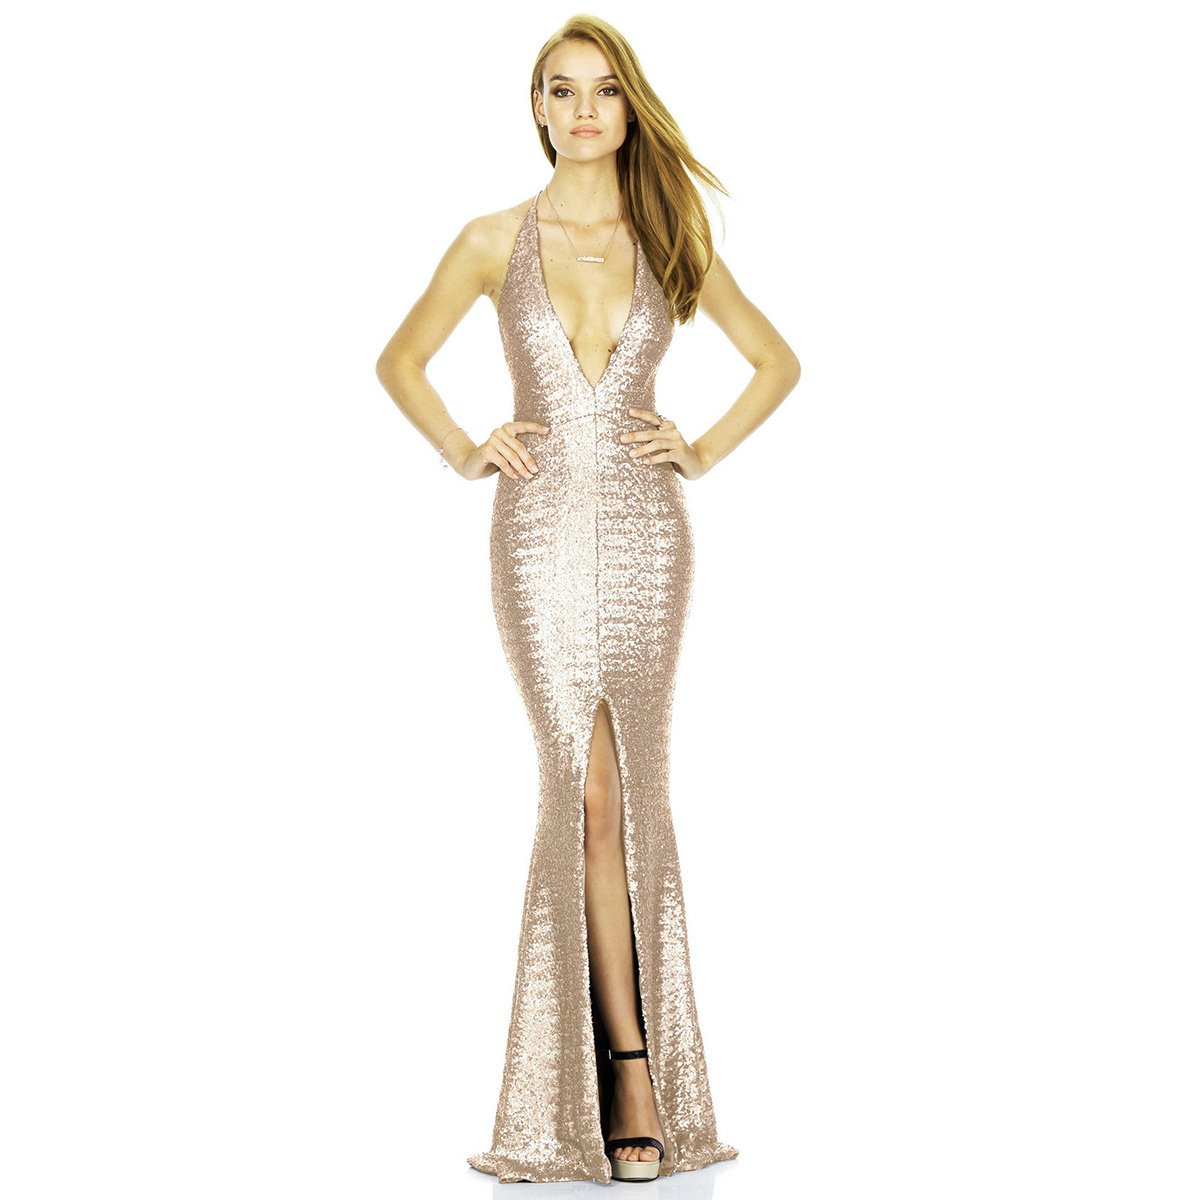 343a9878bc Women Sleeveless Deep V-Neck Sequin Split Bodycon Cocktail Party Maxi Dress  Mermaid Prom Gown Solid Tight Long Skirt - Beige -  Amazon.co.uk  Clothing